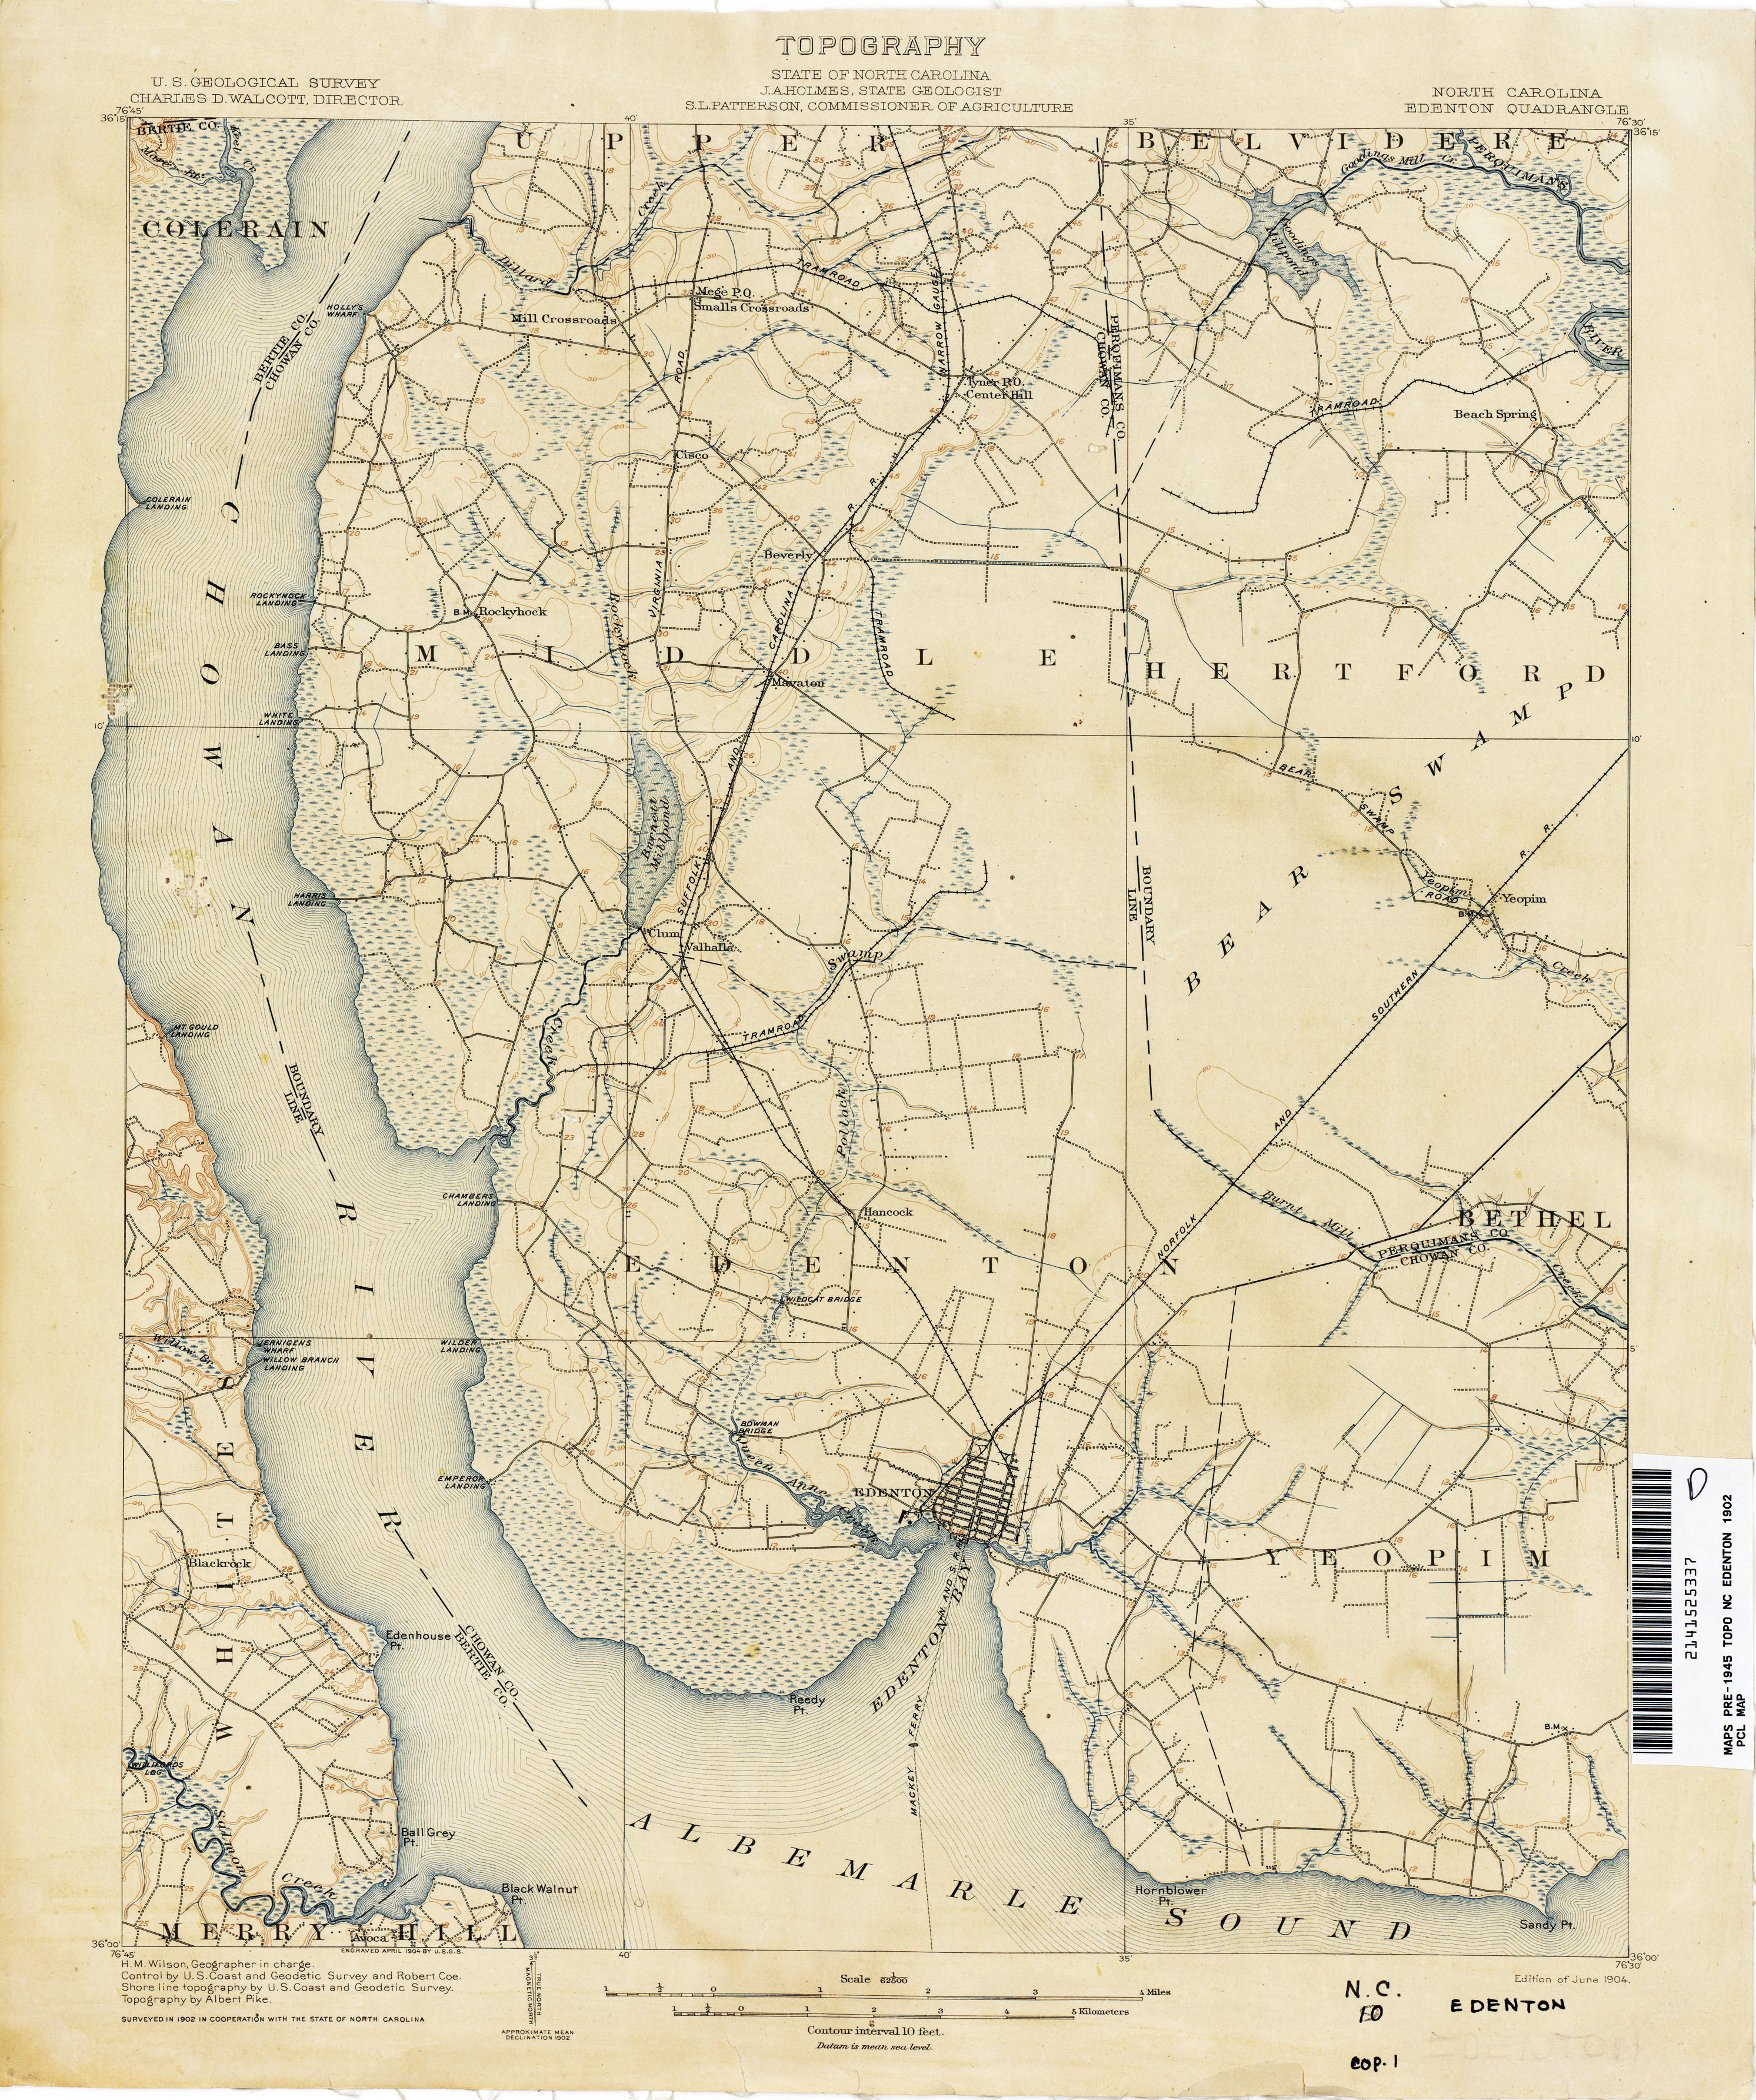 North Carolina Historical Topographic Maps - Perry-Castañeda Map ...